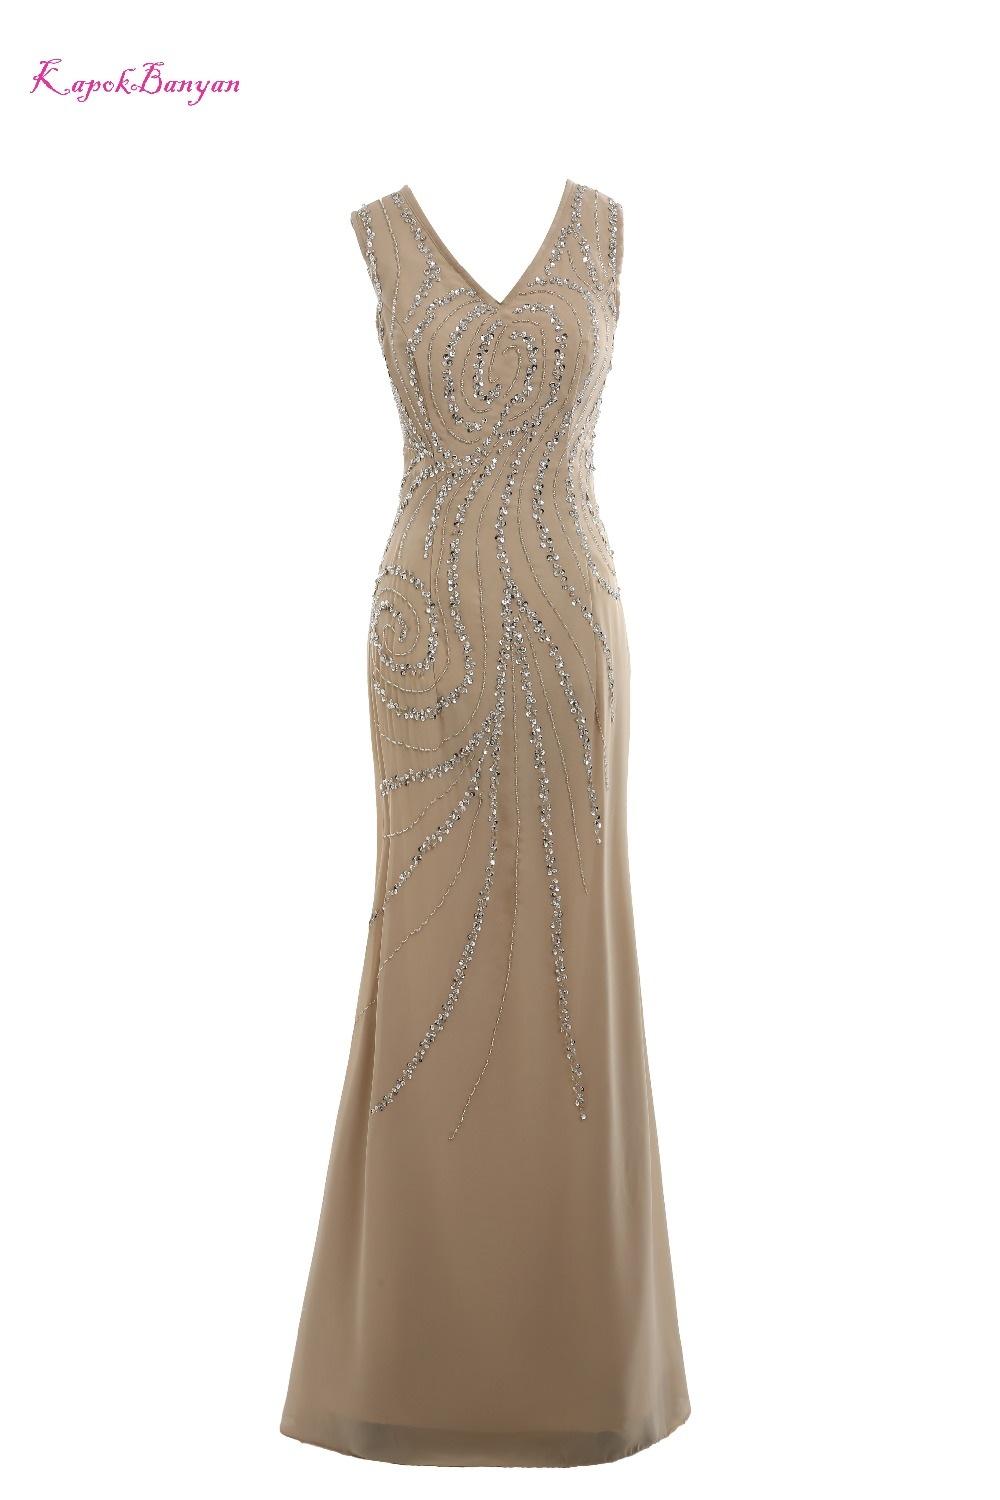 Compare Prices on Simple Evening Gown- Online Shopping/Buy Low ...